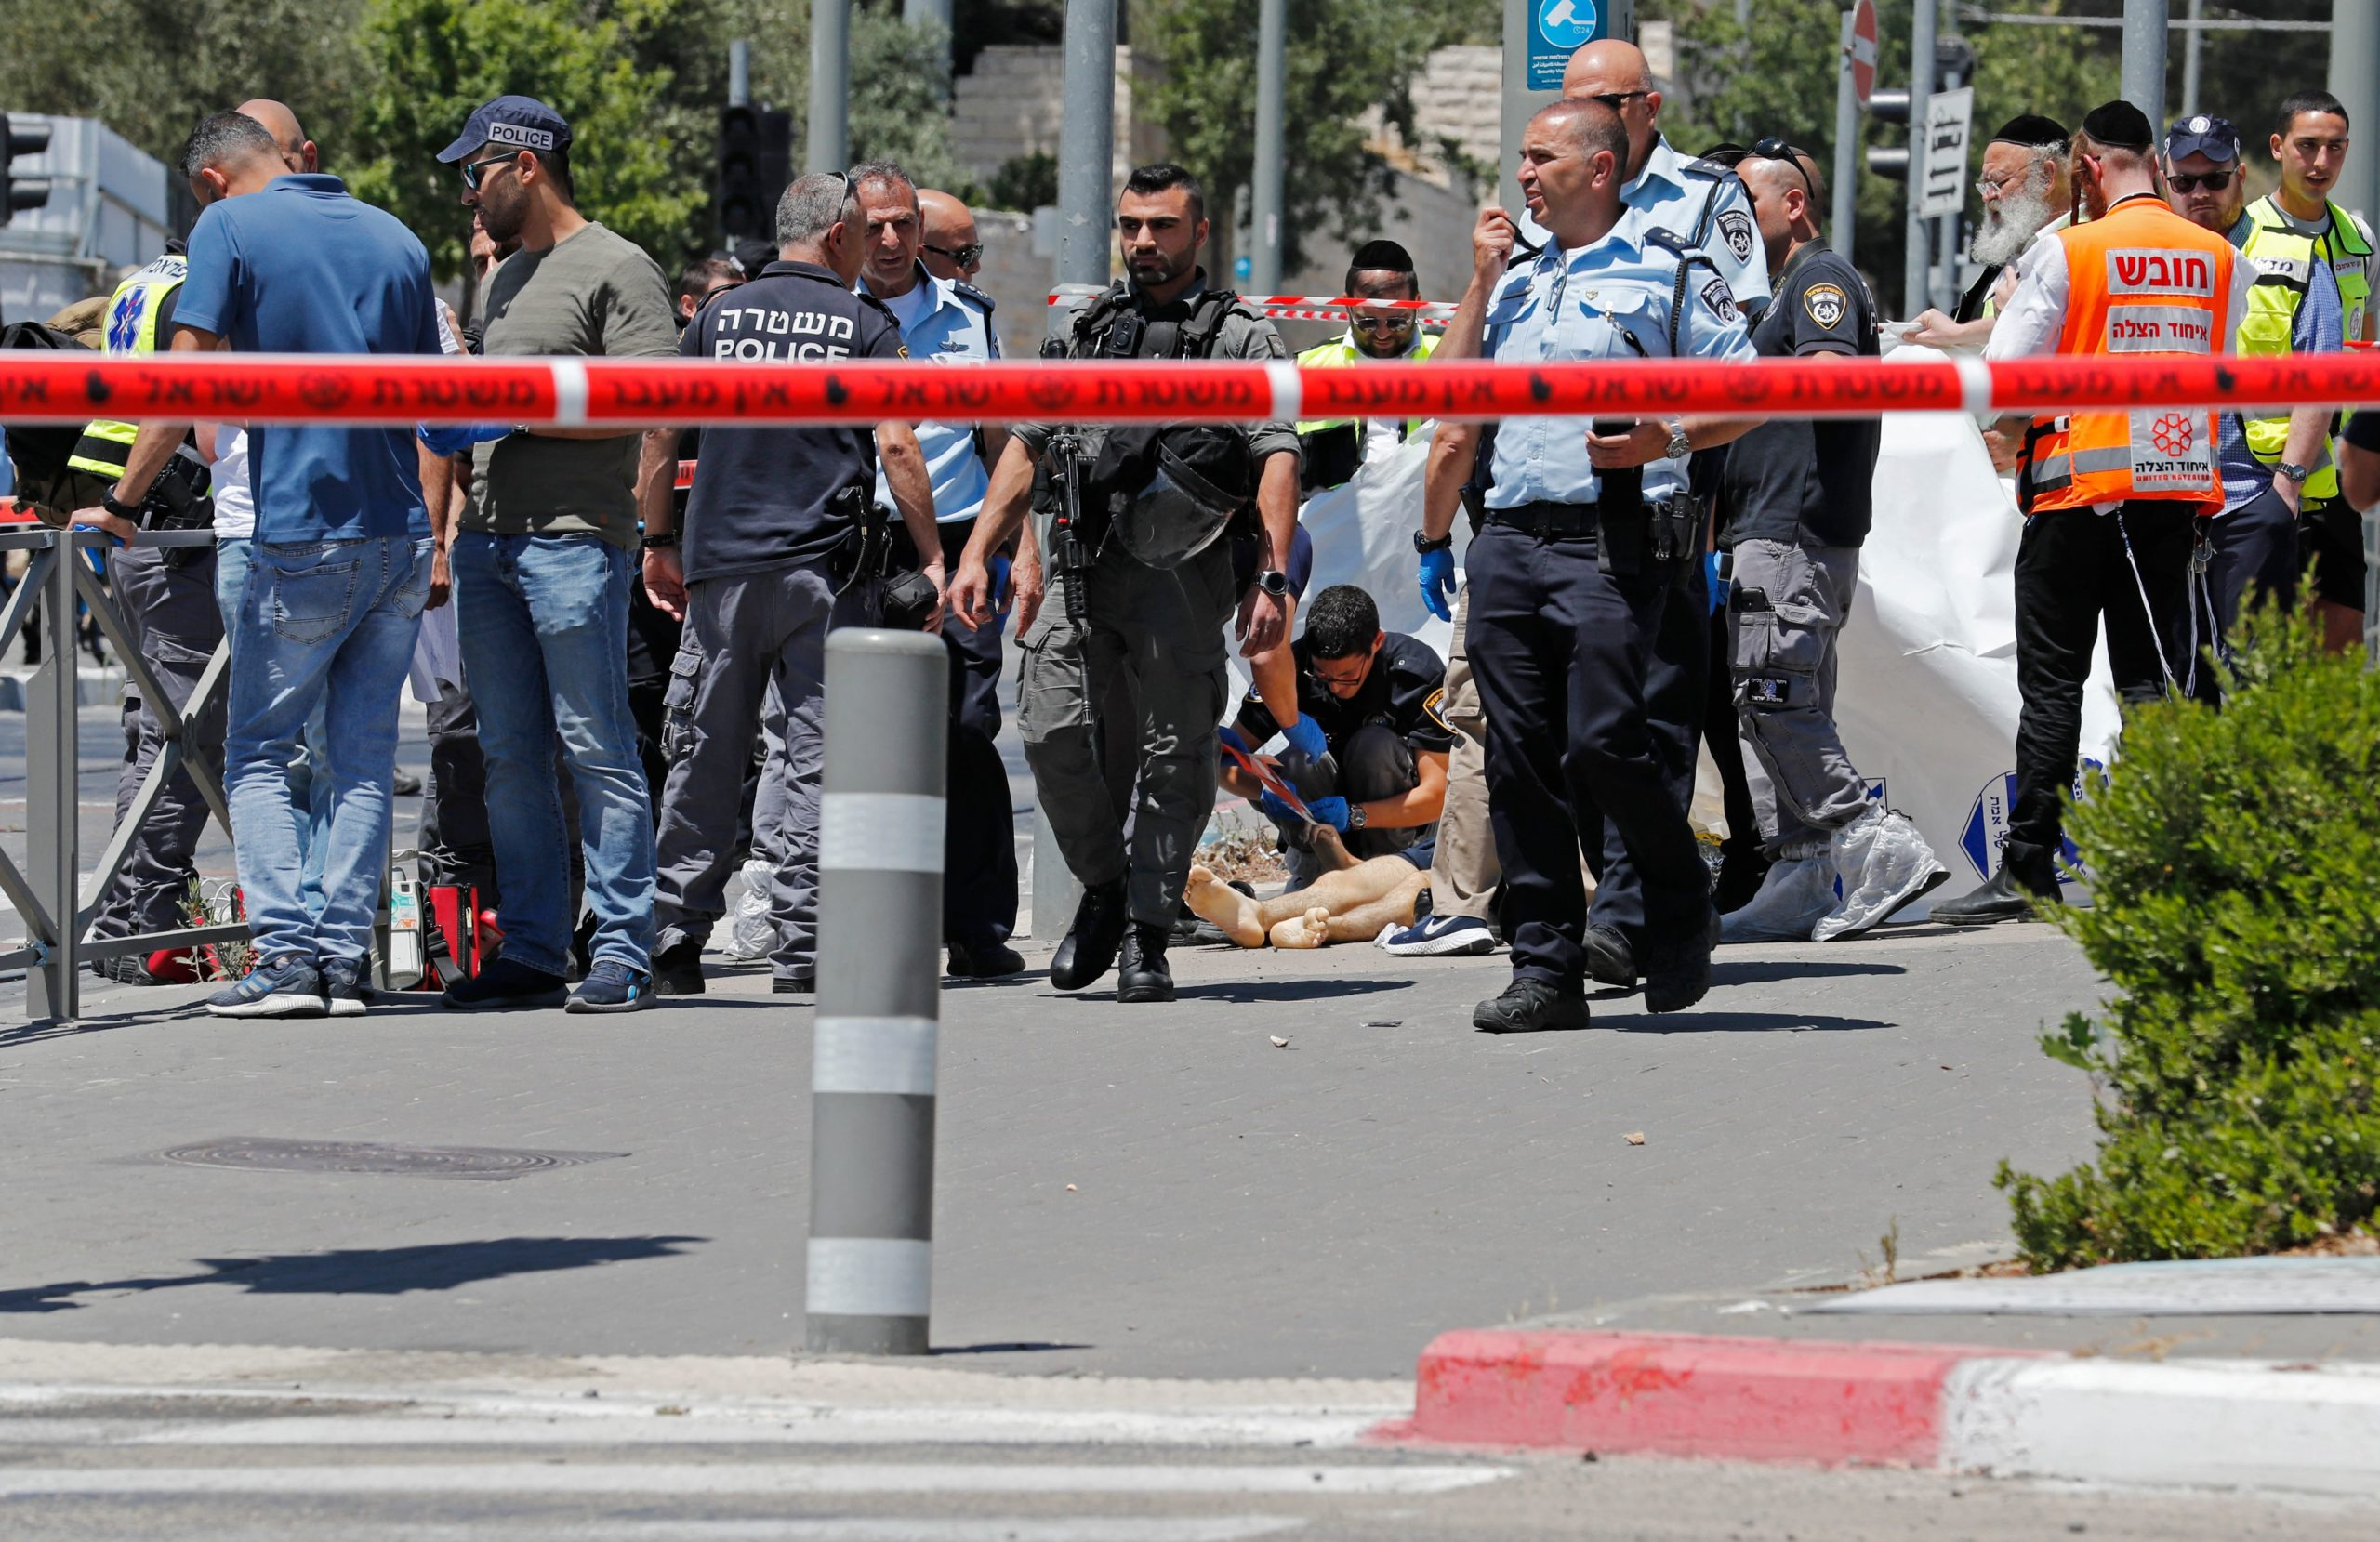 Israeli security forces and emergency services gather around the body of a suspected attacker at the site of a reported stabbing attack near the Sheikh Jarrah neighbourhood in Israeli-annexed east Jerusalem, on May 24, 2021. (Photo by Ahmad GHARABLI / AFP) (Photo by AHMAD GHARABLI/AFP via Getty Images)